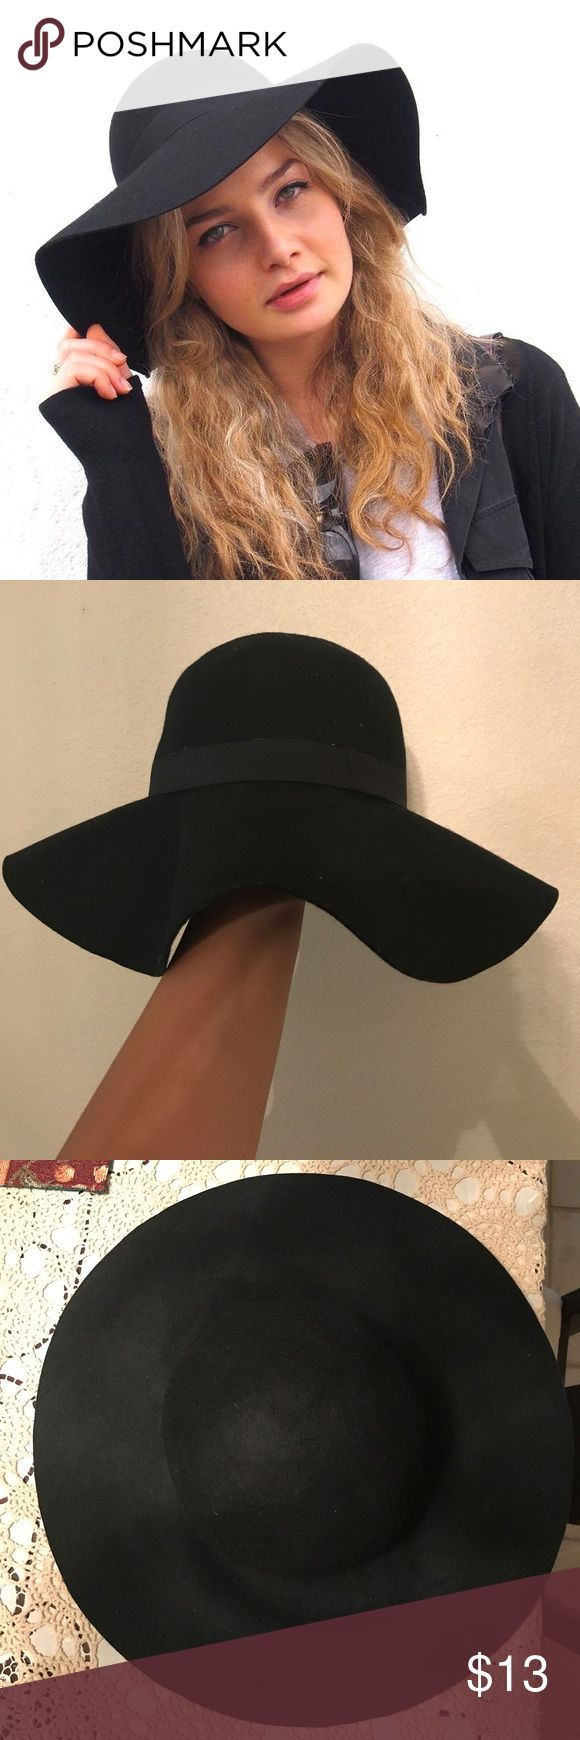 Black Floppy Hat Cute black floppy hat from Cotton On. Great accessory to have in your closet! Only worn a couple times. Cotton On Accessories Hats